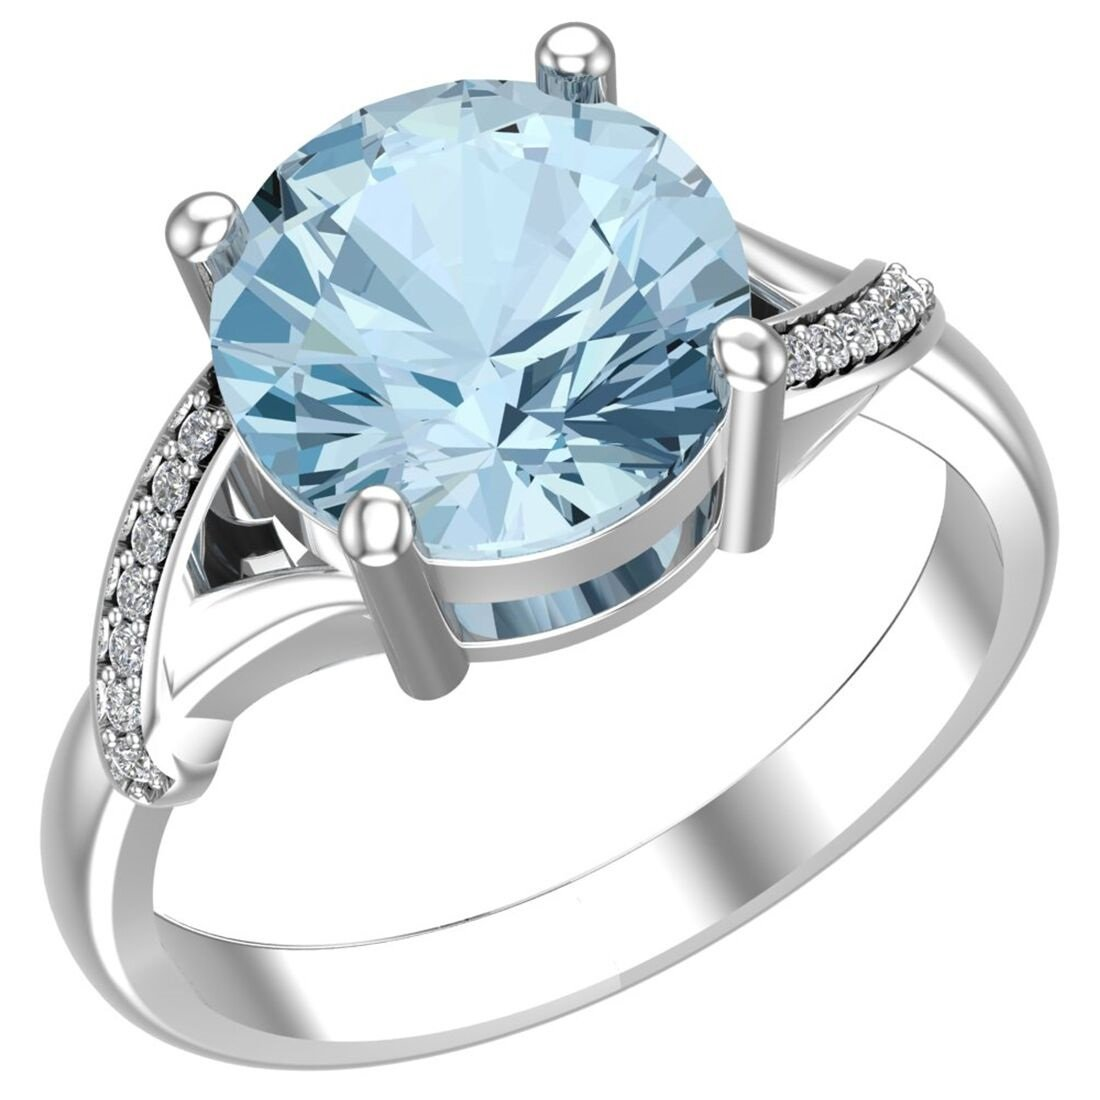 Belinda Jewelz Real Solid 925 Sterling Silver Twisted Band Round Sparkling Gemstone Prong Rhodium Plated Birthstone Engagement Wedding Classic Womens Fine Jewelry Ring Rings, Sky Blue Topaz, Size 8 by Belinda Jewelz (Image #2)